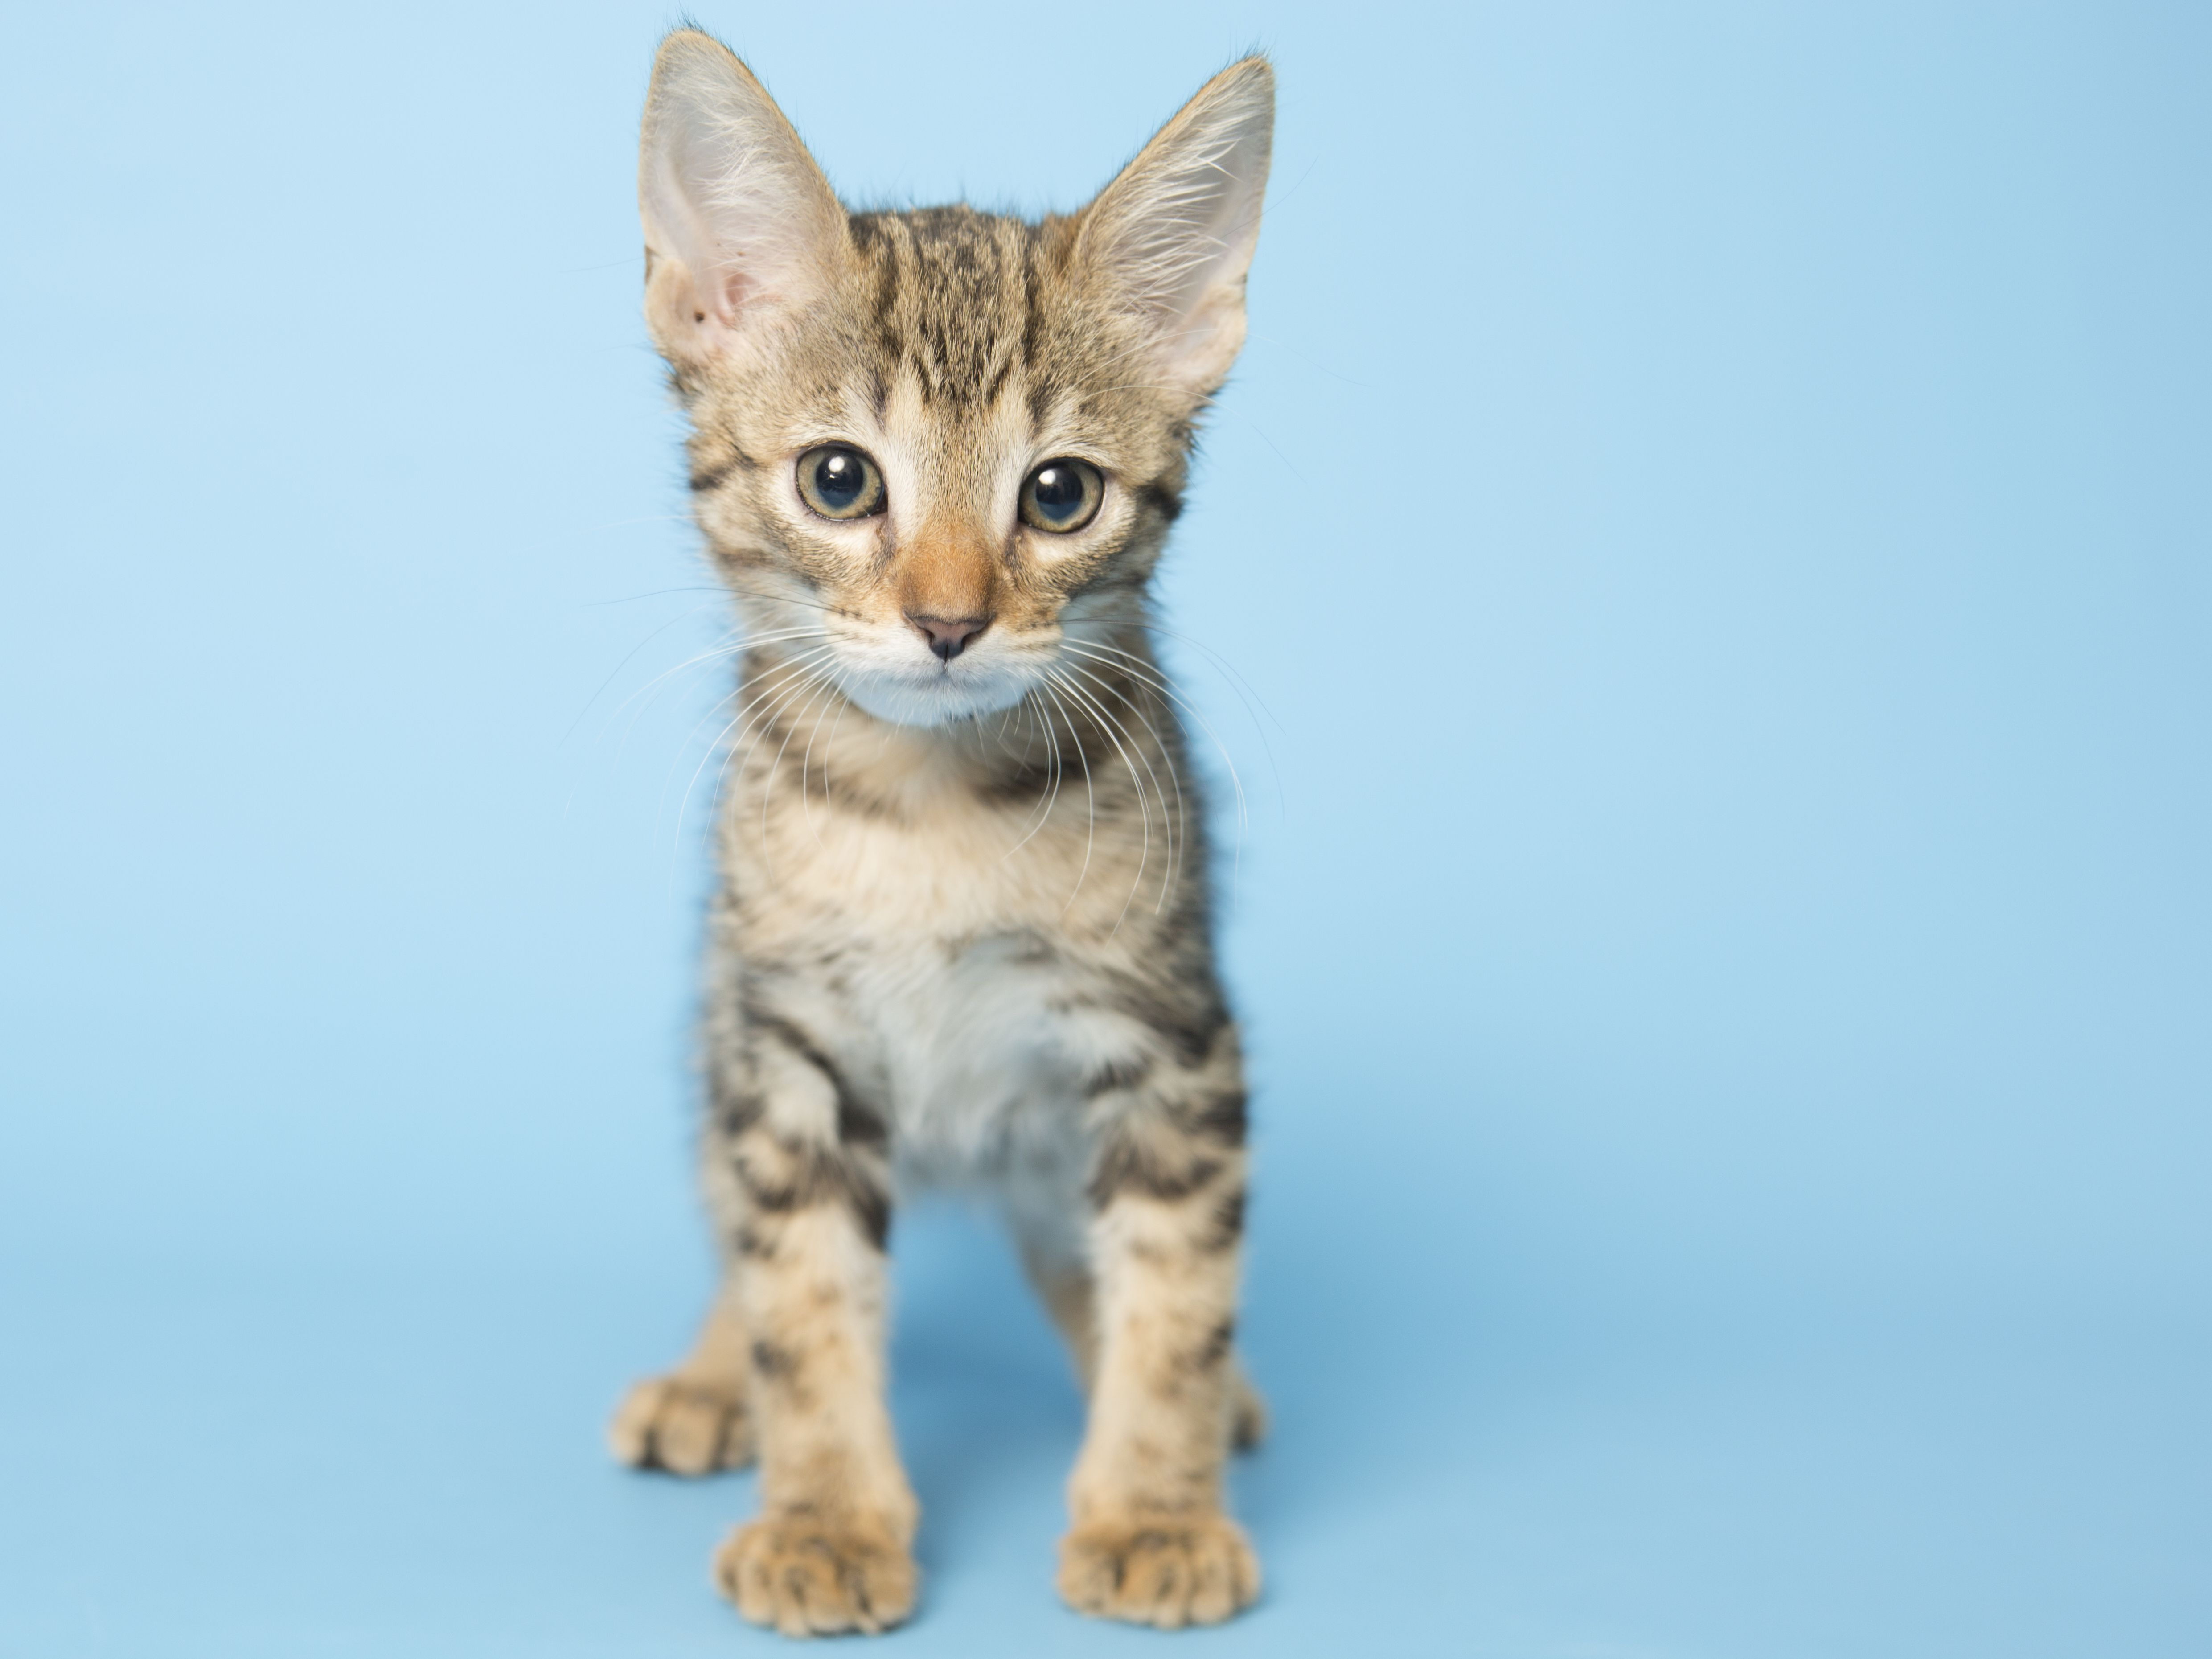 Cheeta Is An Adorable 2 Month Old Tabby Looking For His Fur Ever Home He Has Lived With Other Cats And Dogs Before And Got A Cat Adoption Kitten Adoption Cats